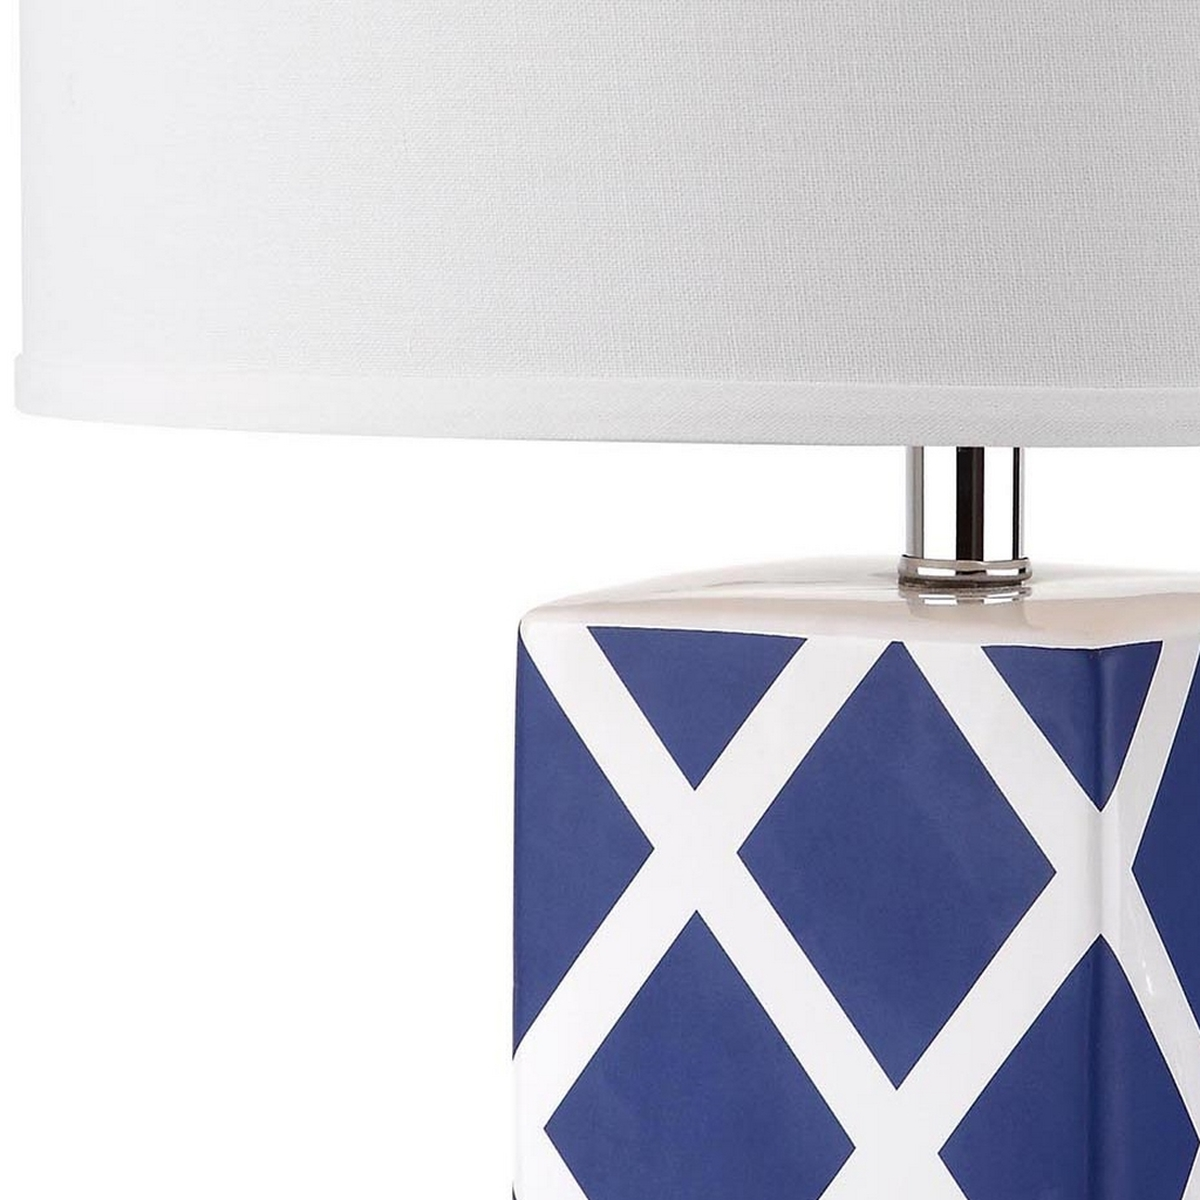 625997124f1b ... Garden Lattice table lamp by Safavieh. Crafted of navy and white  ceramic with acrylic base and a silver neck, this graphic windowpane design  is topped ...